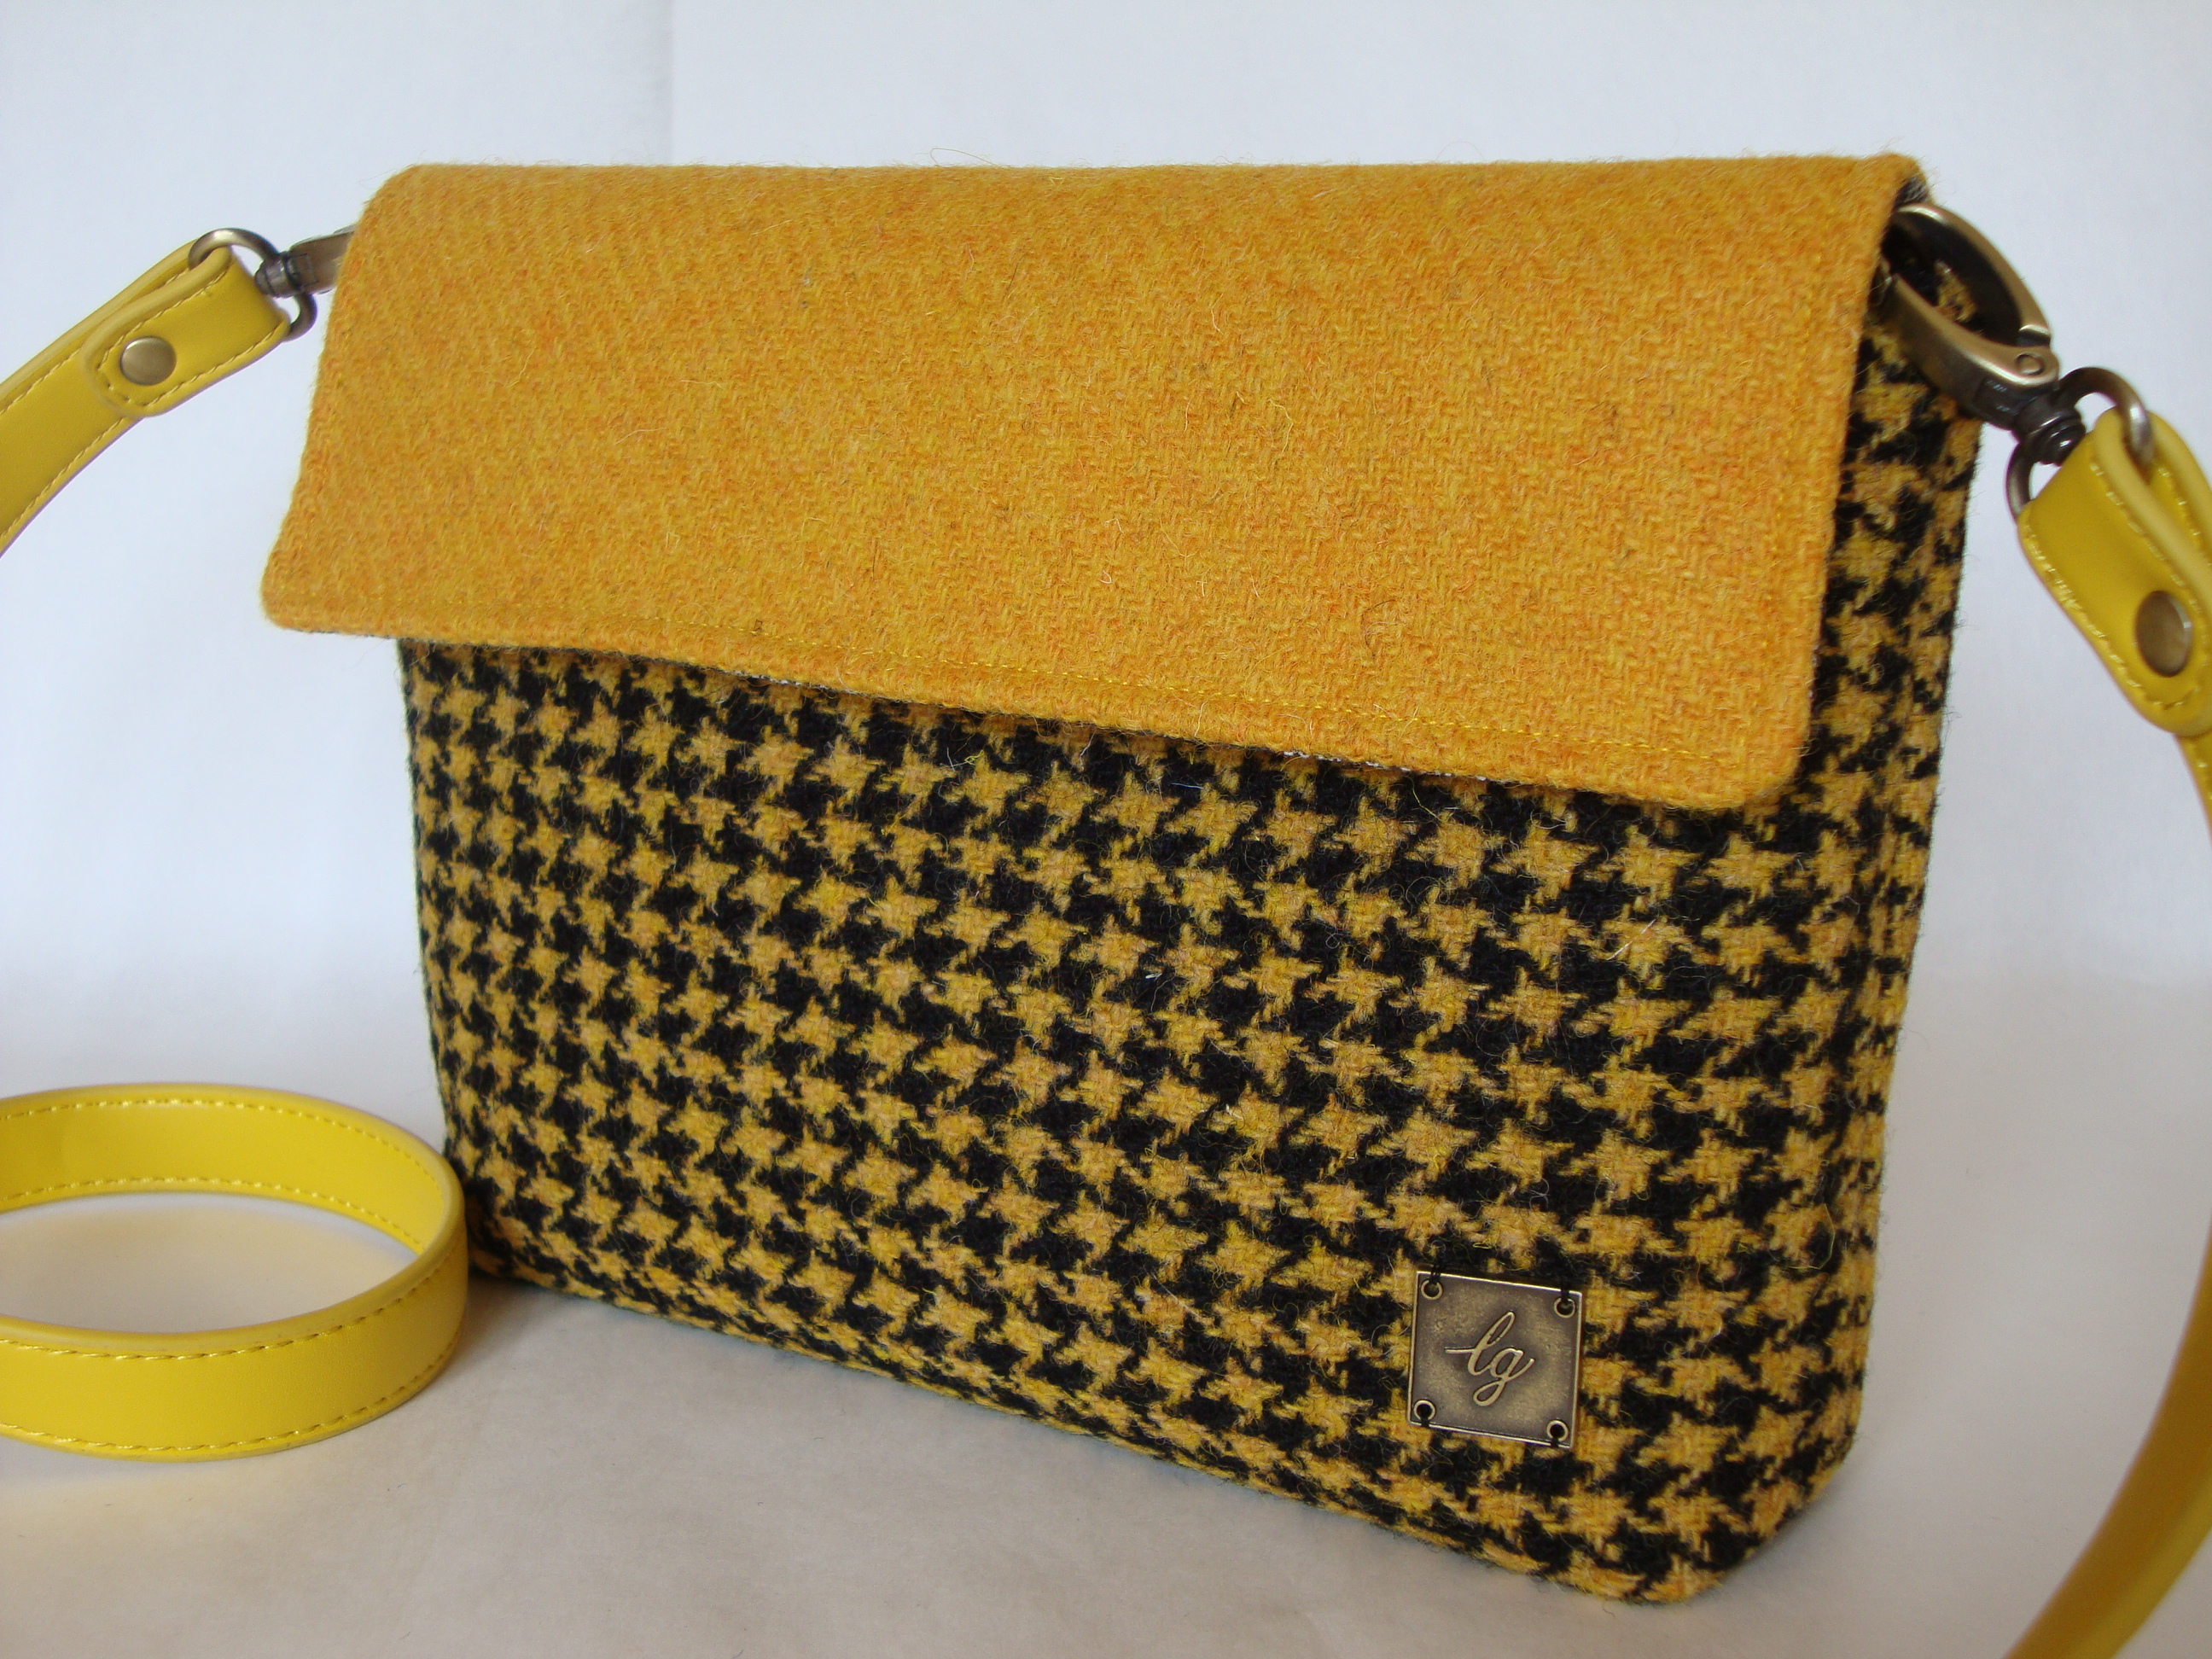 Black and yellow small bag